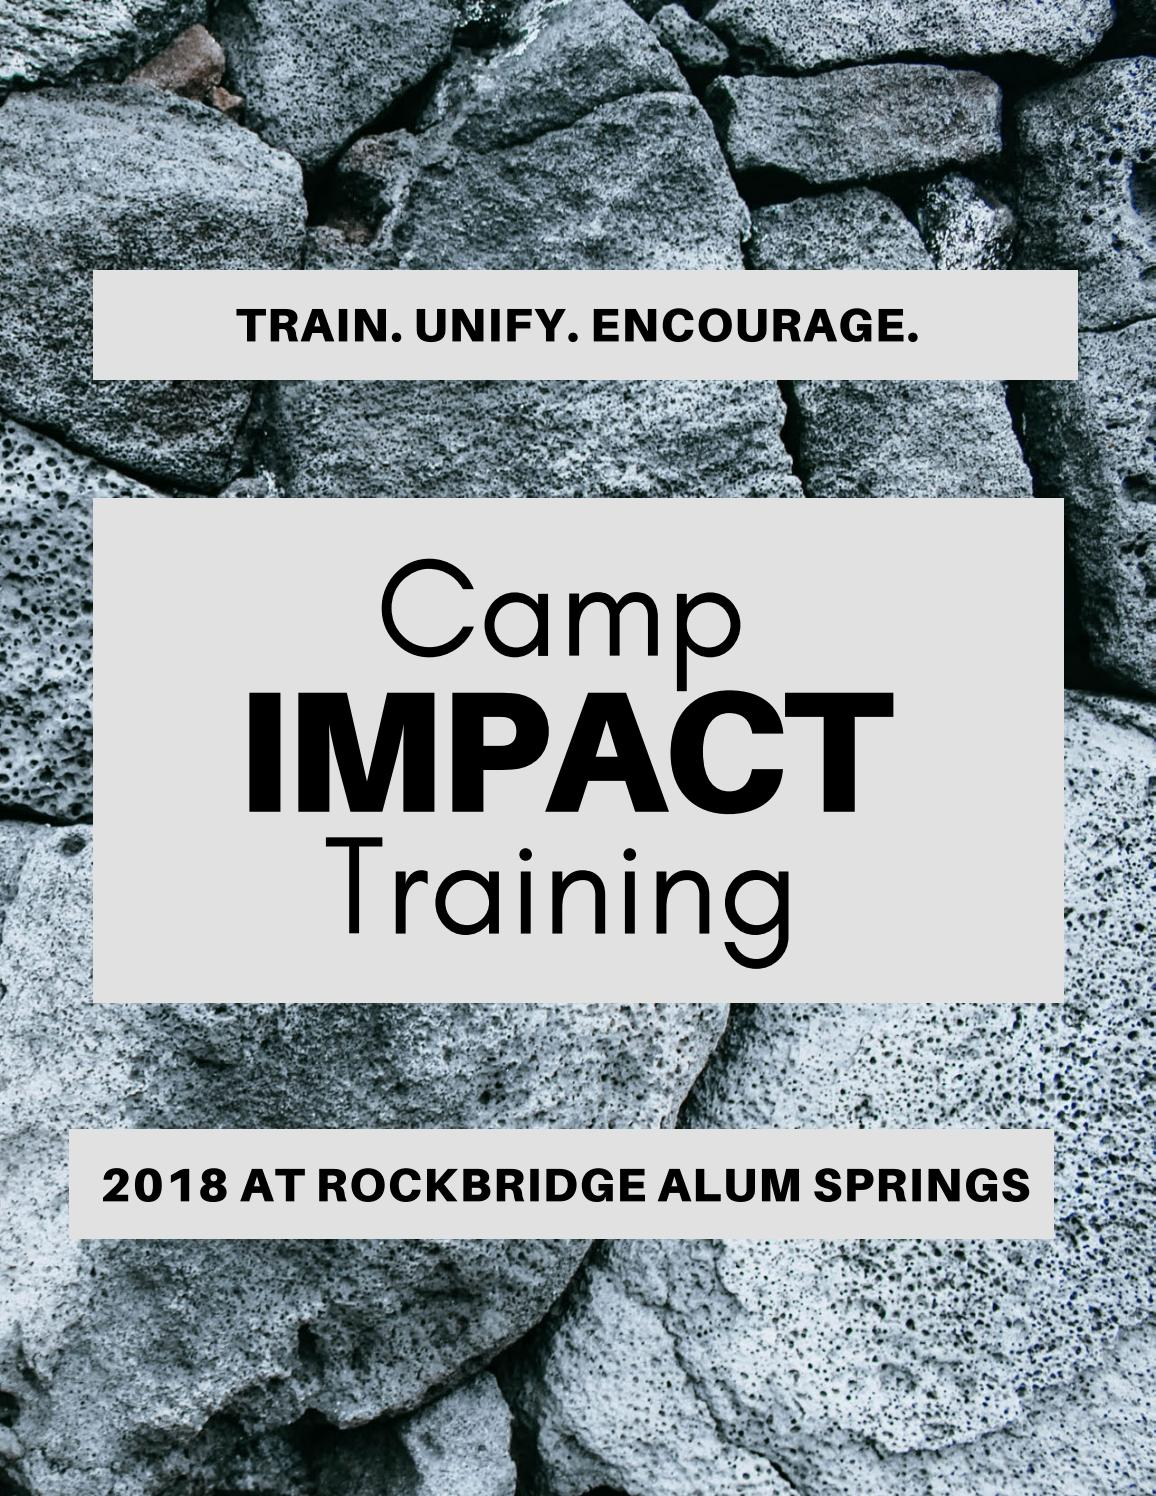 Impact Training - Rockbridge Alum Springs - 2018 by Young